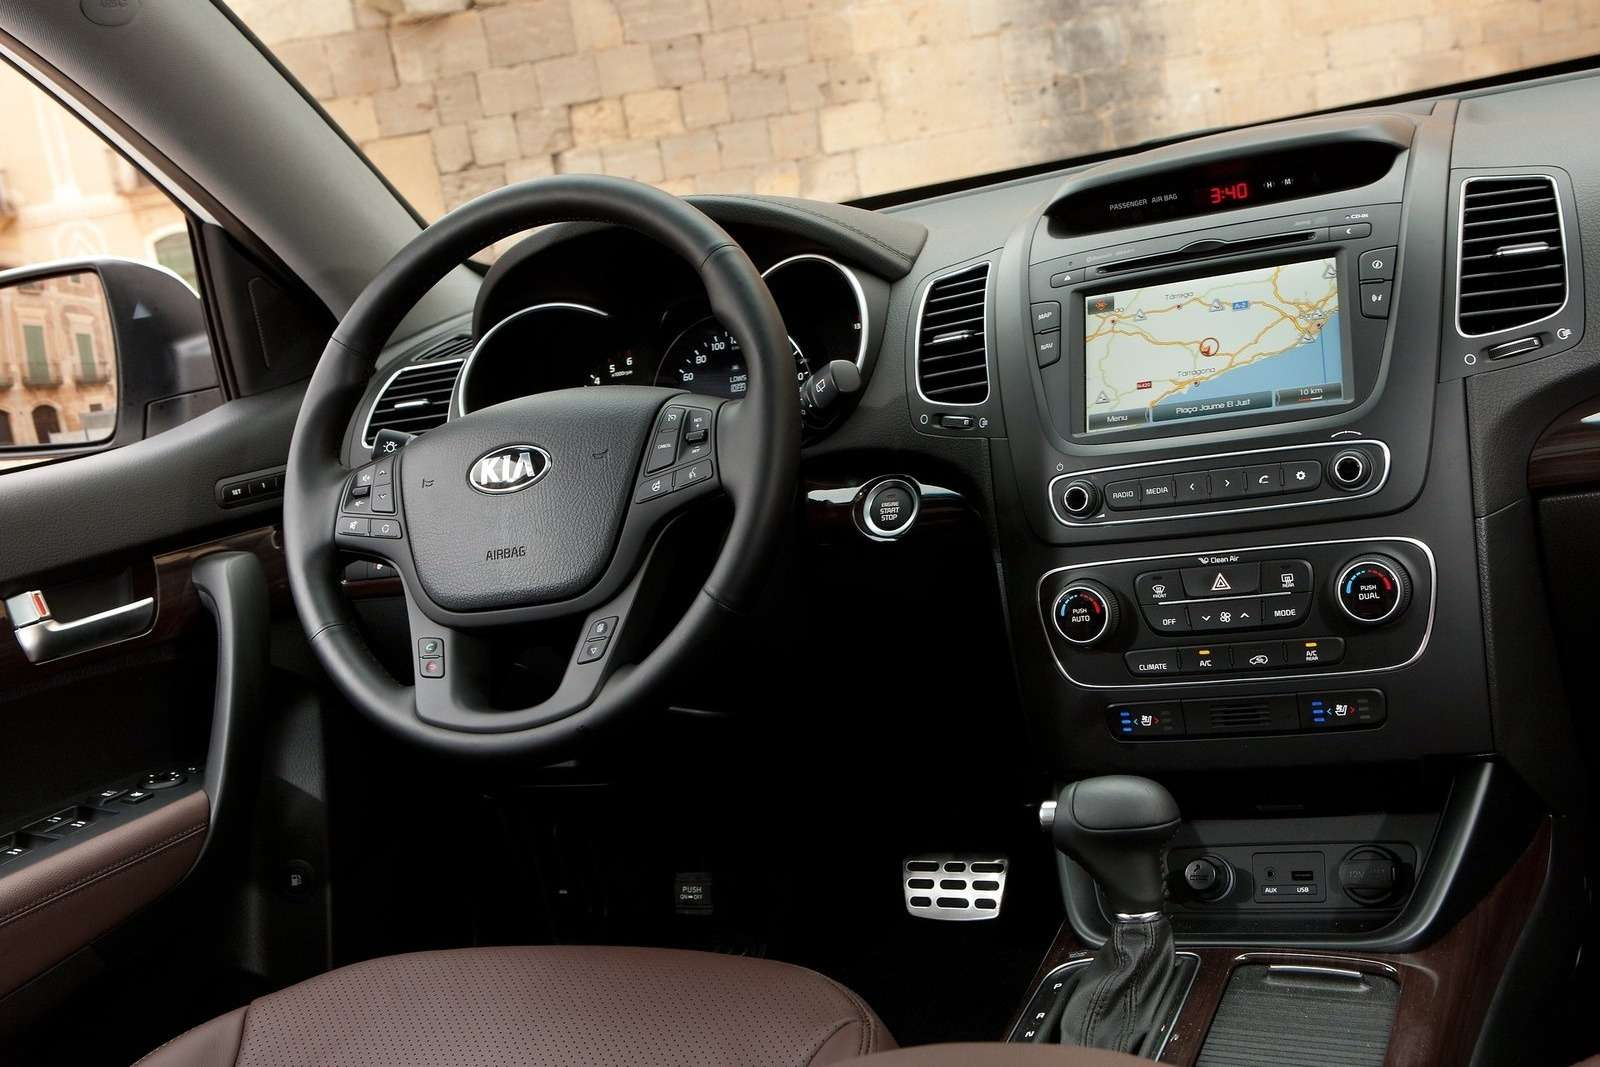 Kia-Sorento_EU-Version_2013_1600x1200_wallpaper_33